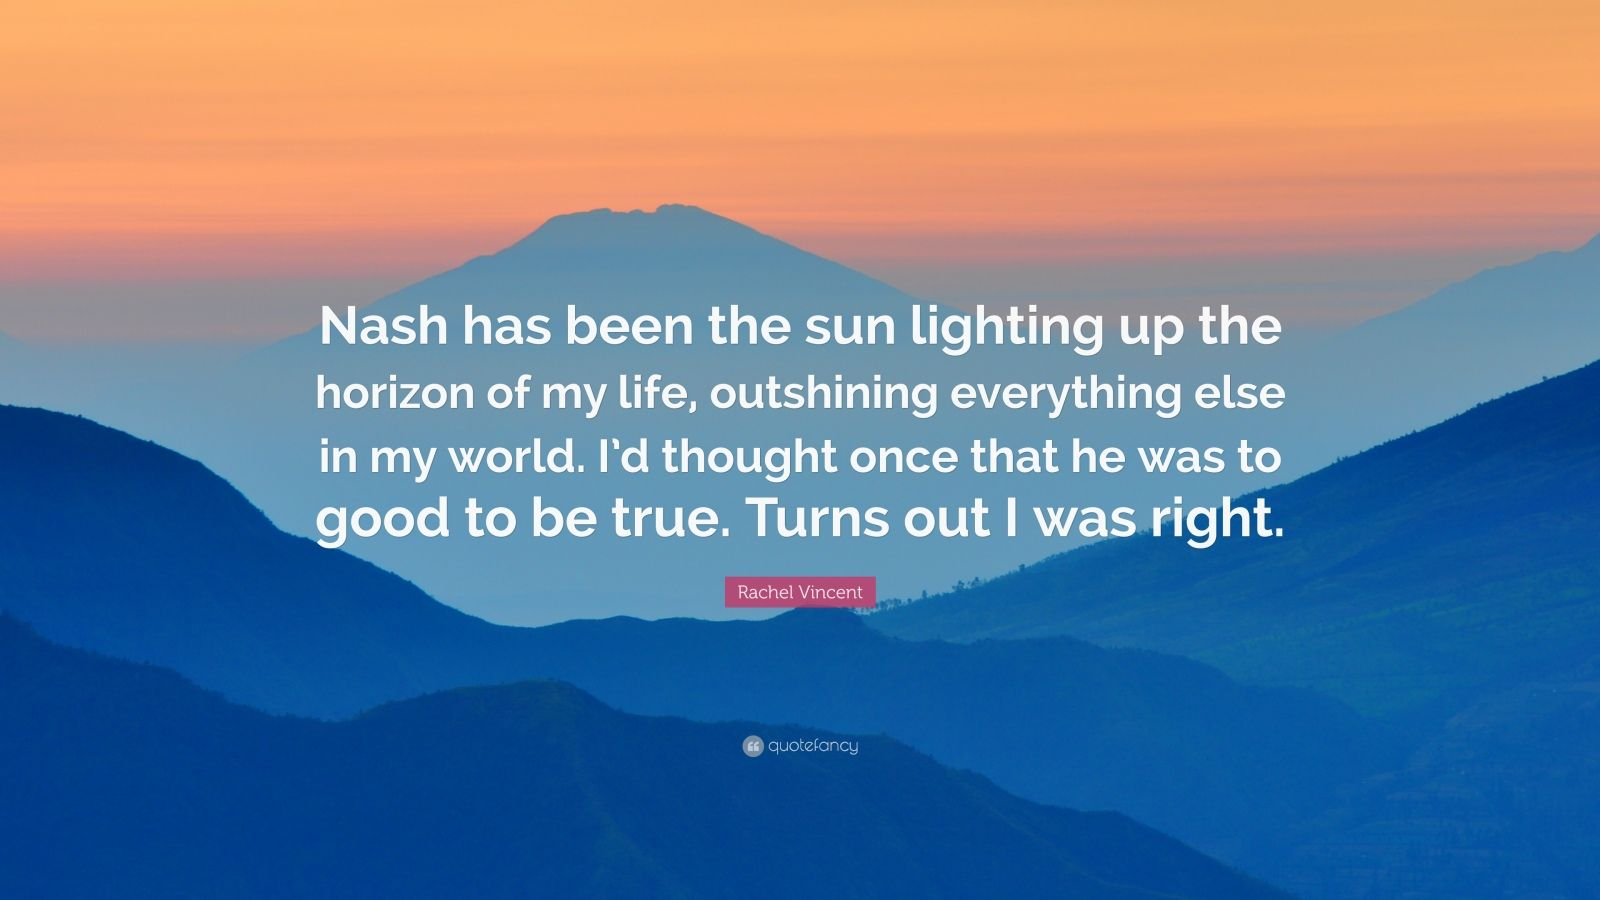 "Rachel Vincent Quote: ""Nash has been the sun lighting up the horizon of my life, outshining everything else in my world. I'd thought once that he was to good to be true. Turns out I was right."""